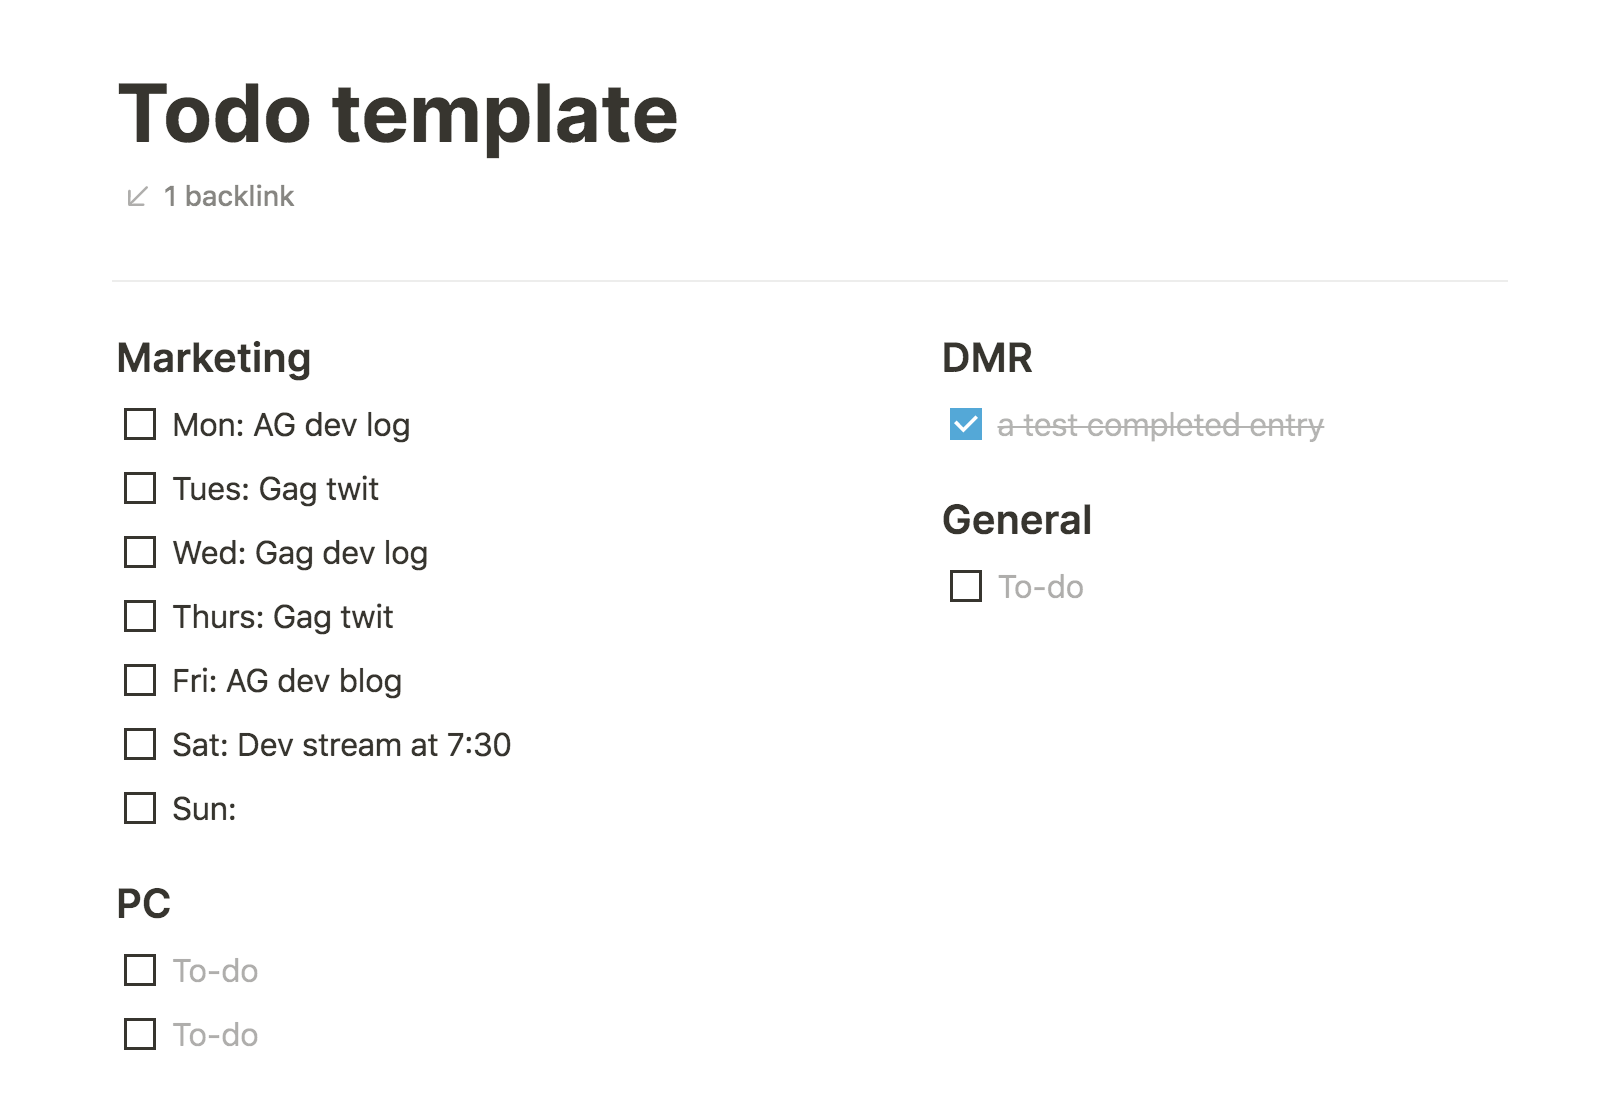 screenshot of notion page. two column template with Marketing and PC headings in the left column and DMR and General headings in the right column. Marketing column has 7 tasks with each day of the week. DMR has one task completed to show the formatting change.